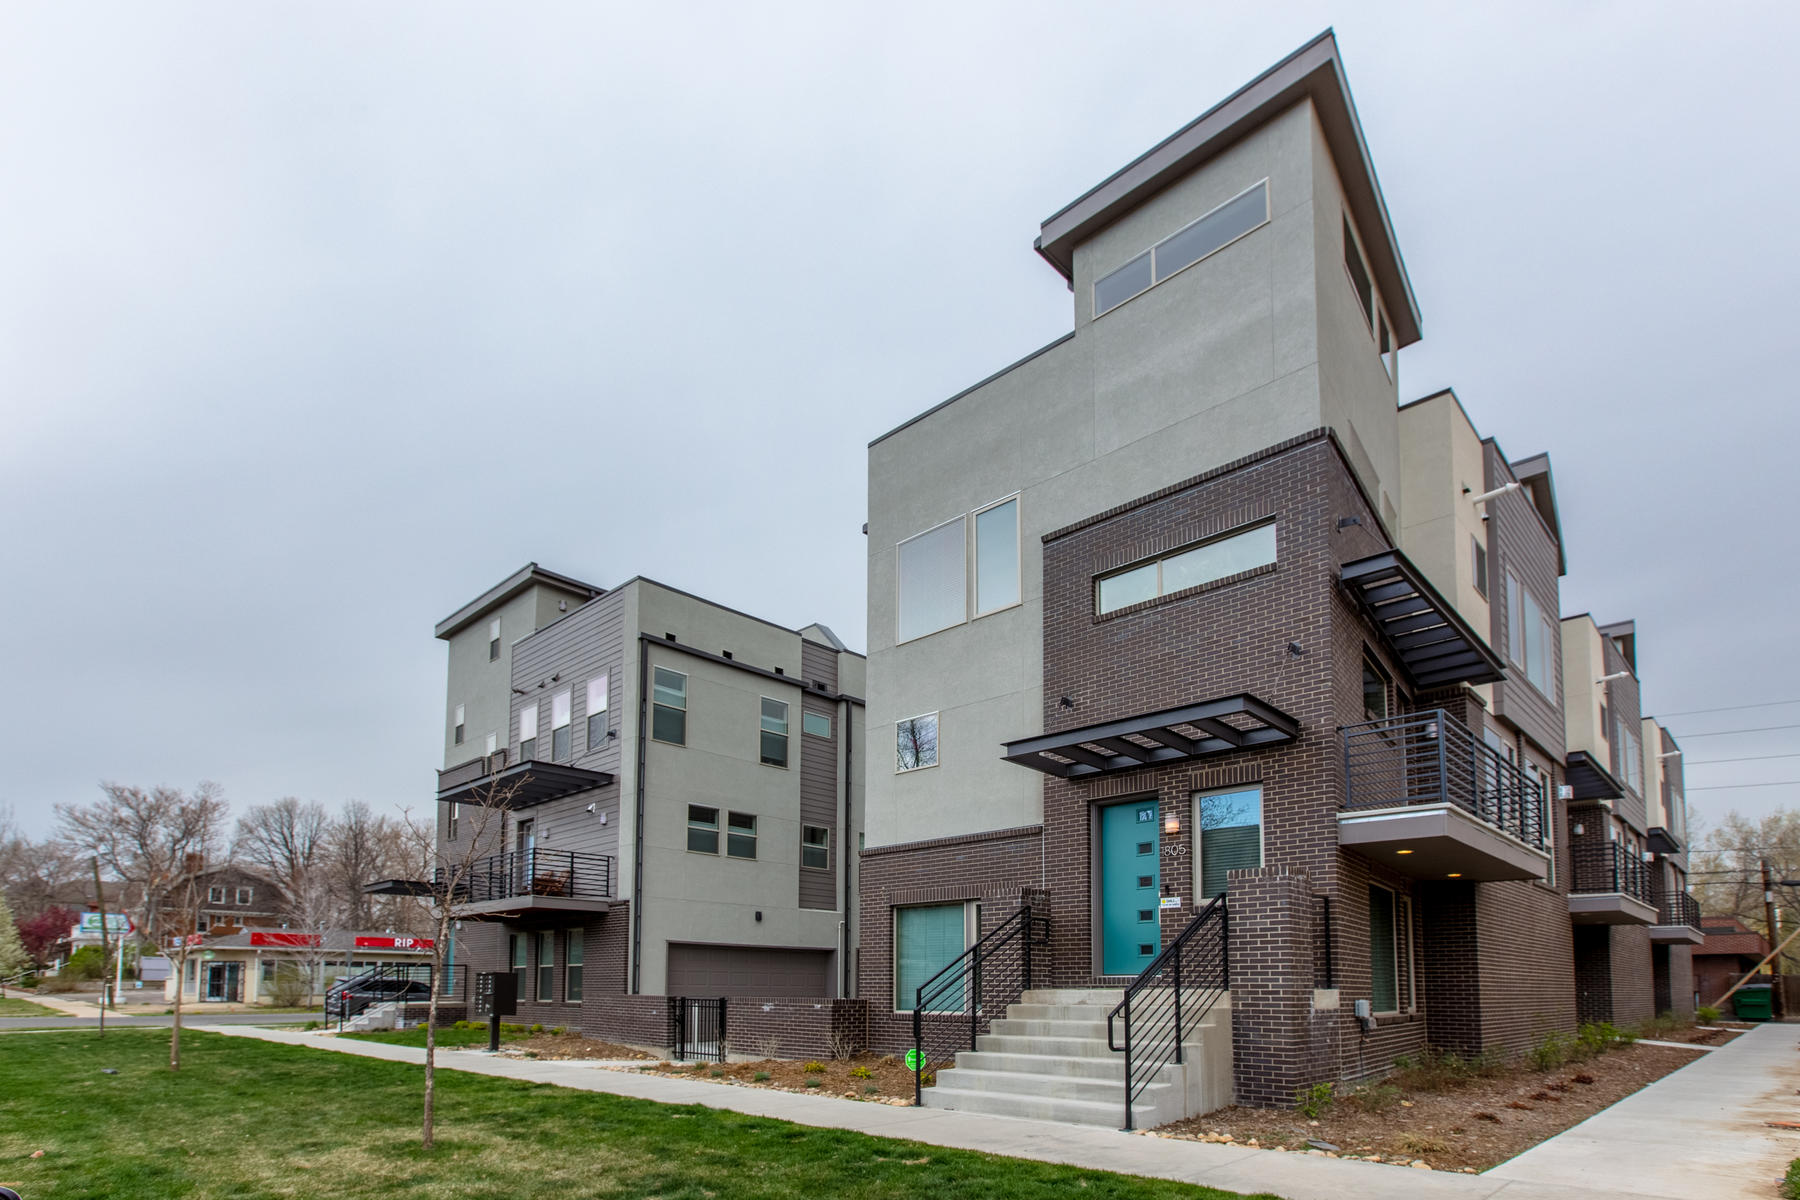 Single Family Home for Active at Gaylord Station 1819 Gaylord Street Denver, Colorado 80206 United States